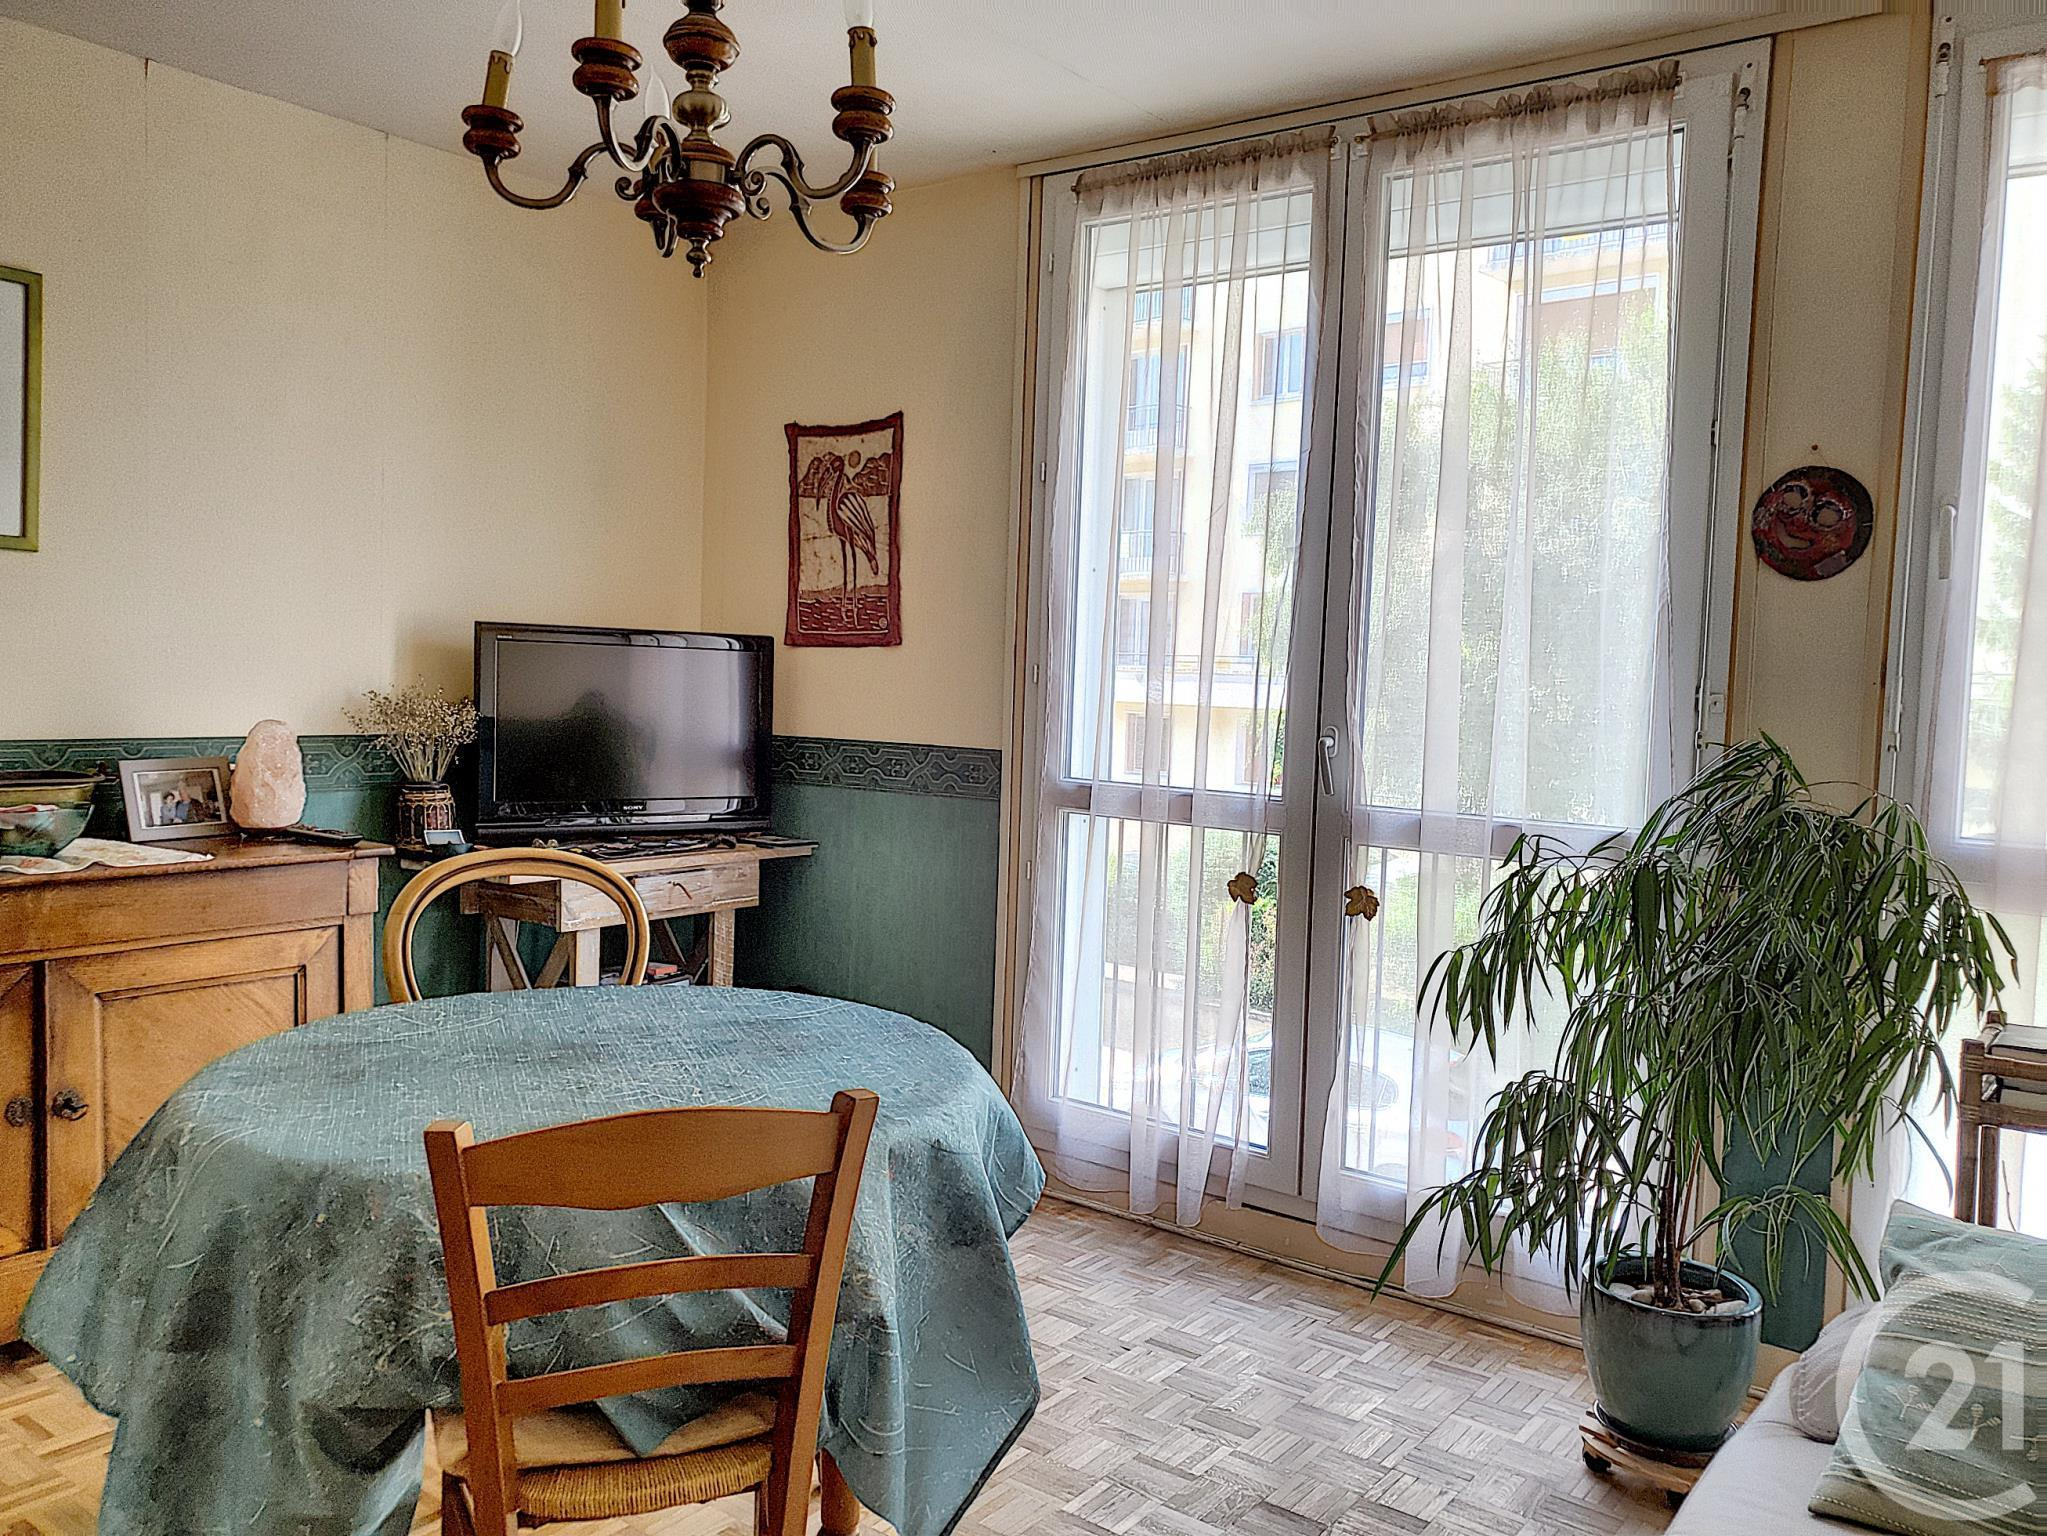 Appartement F3 à vendre - 3 pièces - 53 m2 - TROYES - 10 - CHAMPAGNE-ARDENNE